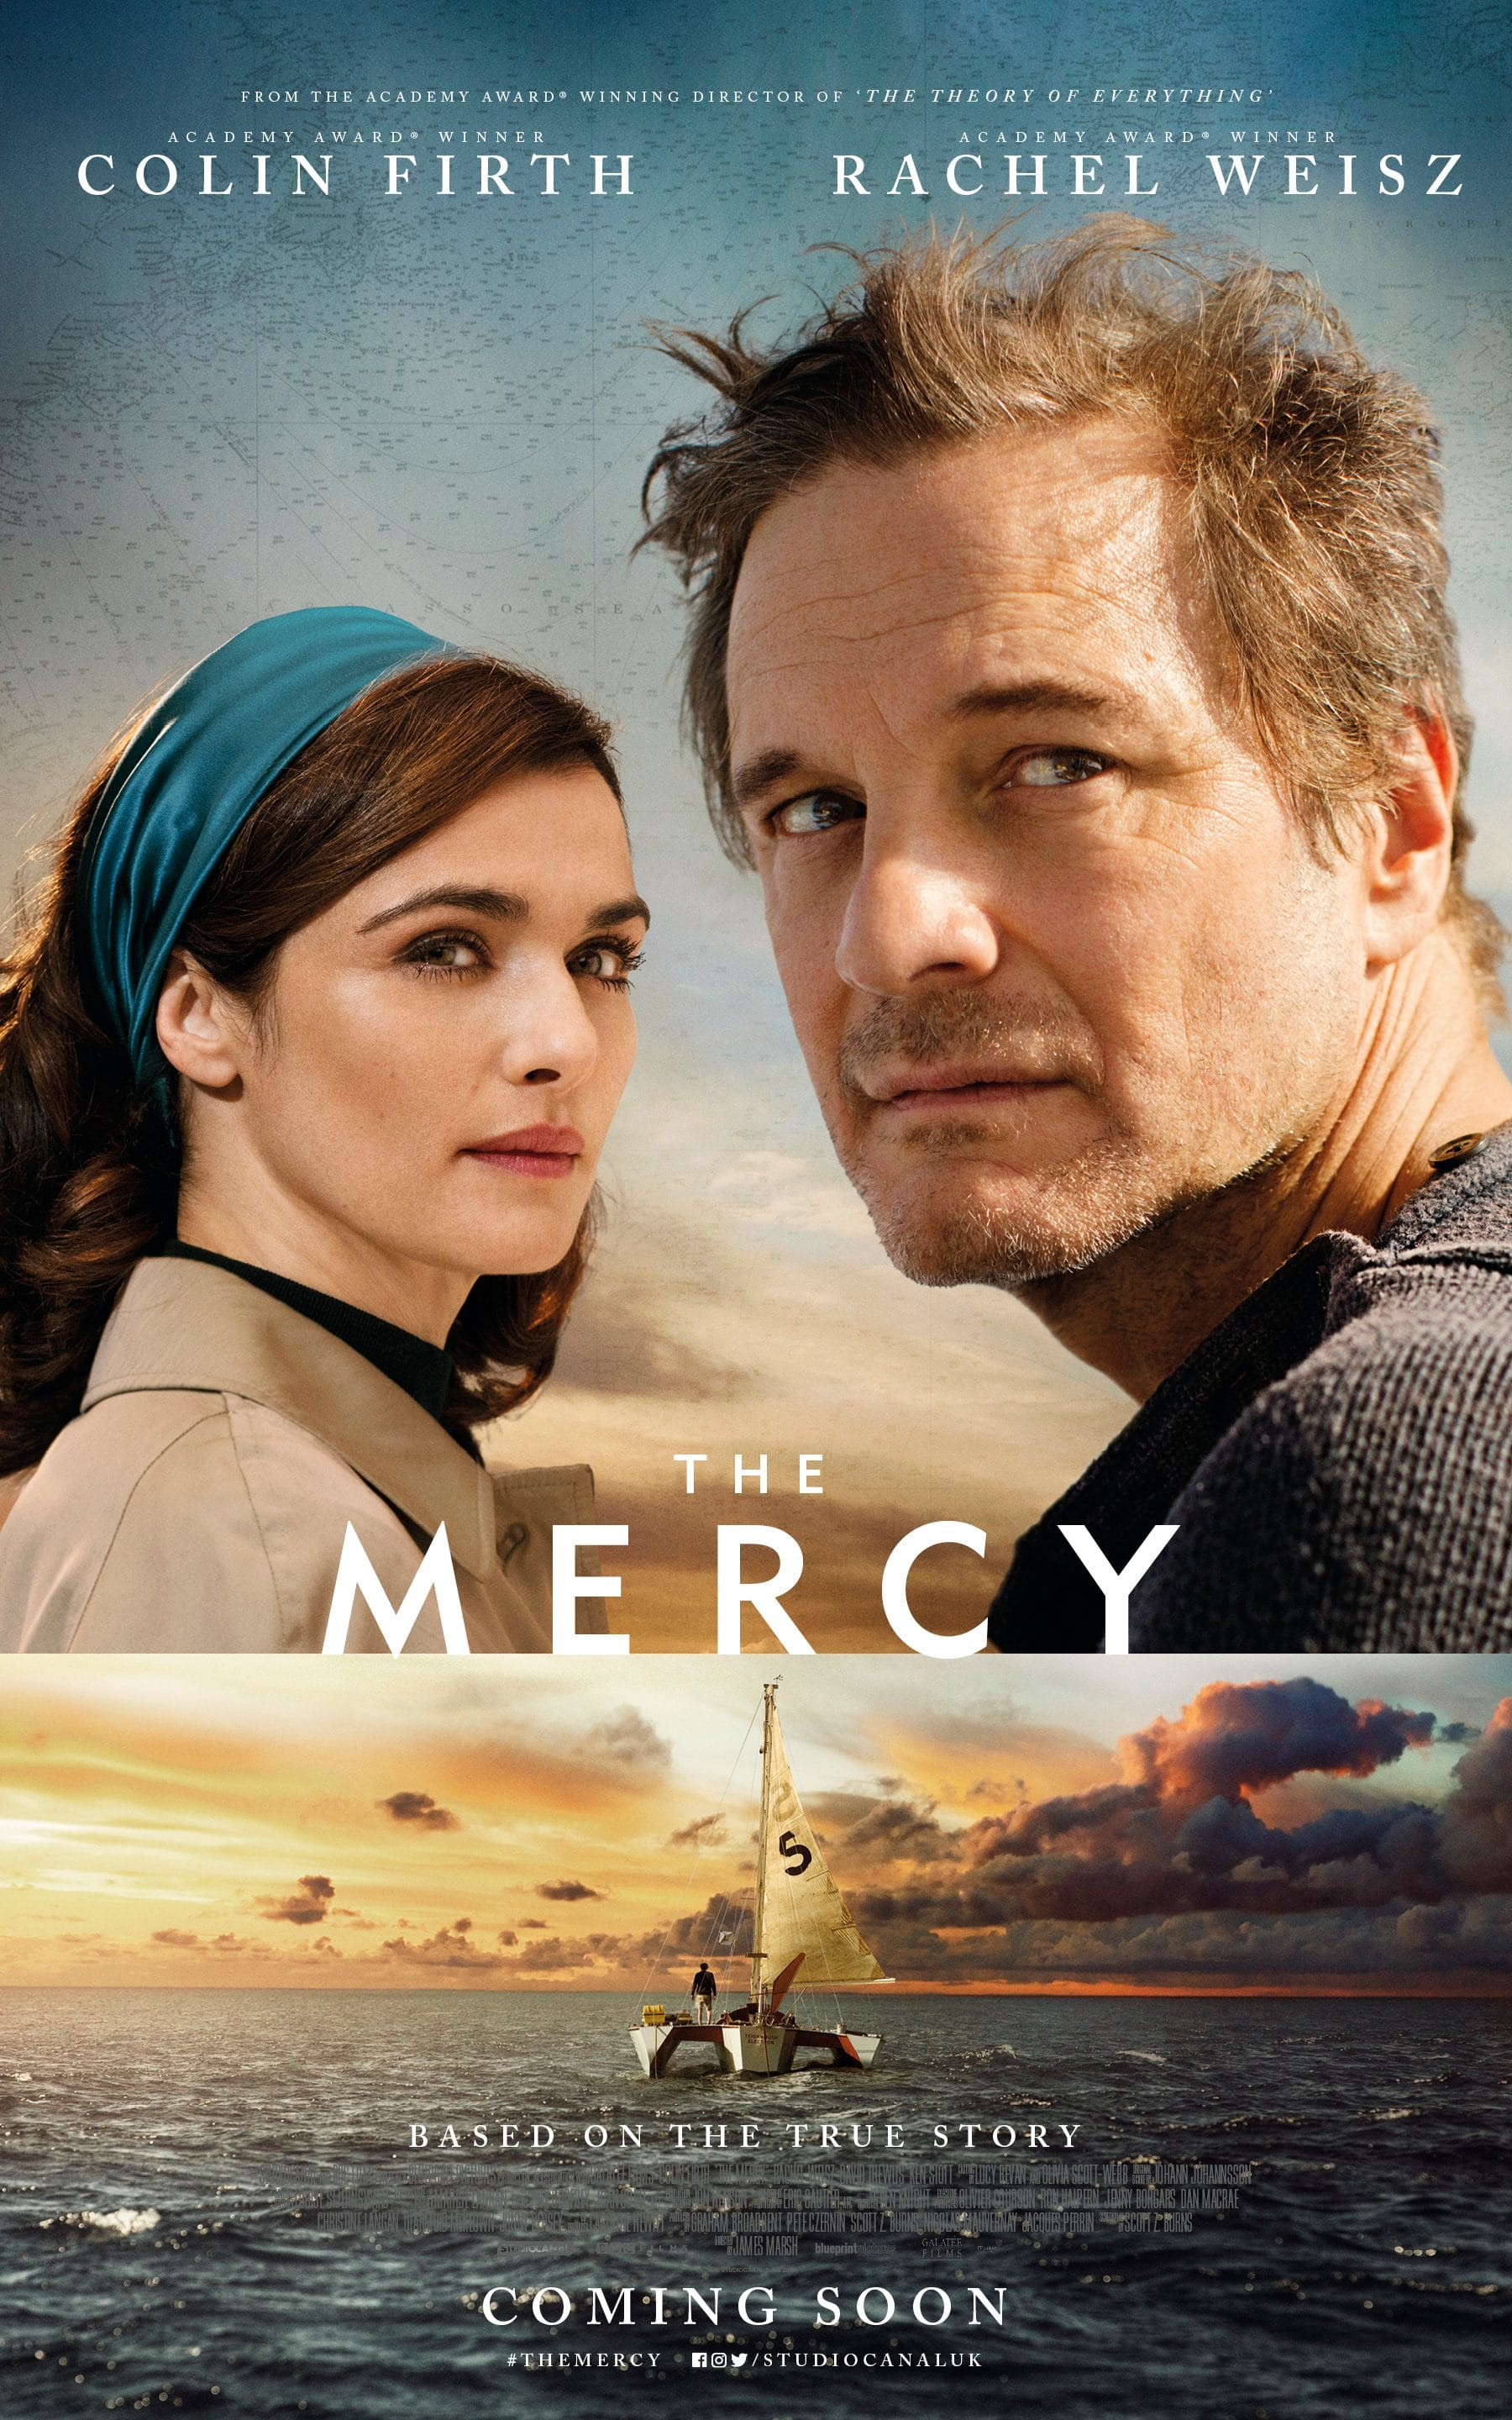 The Mercy trailer – Donald Crowhurst biopic – Feb 9 2018 release